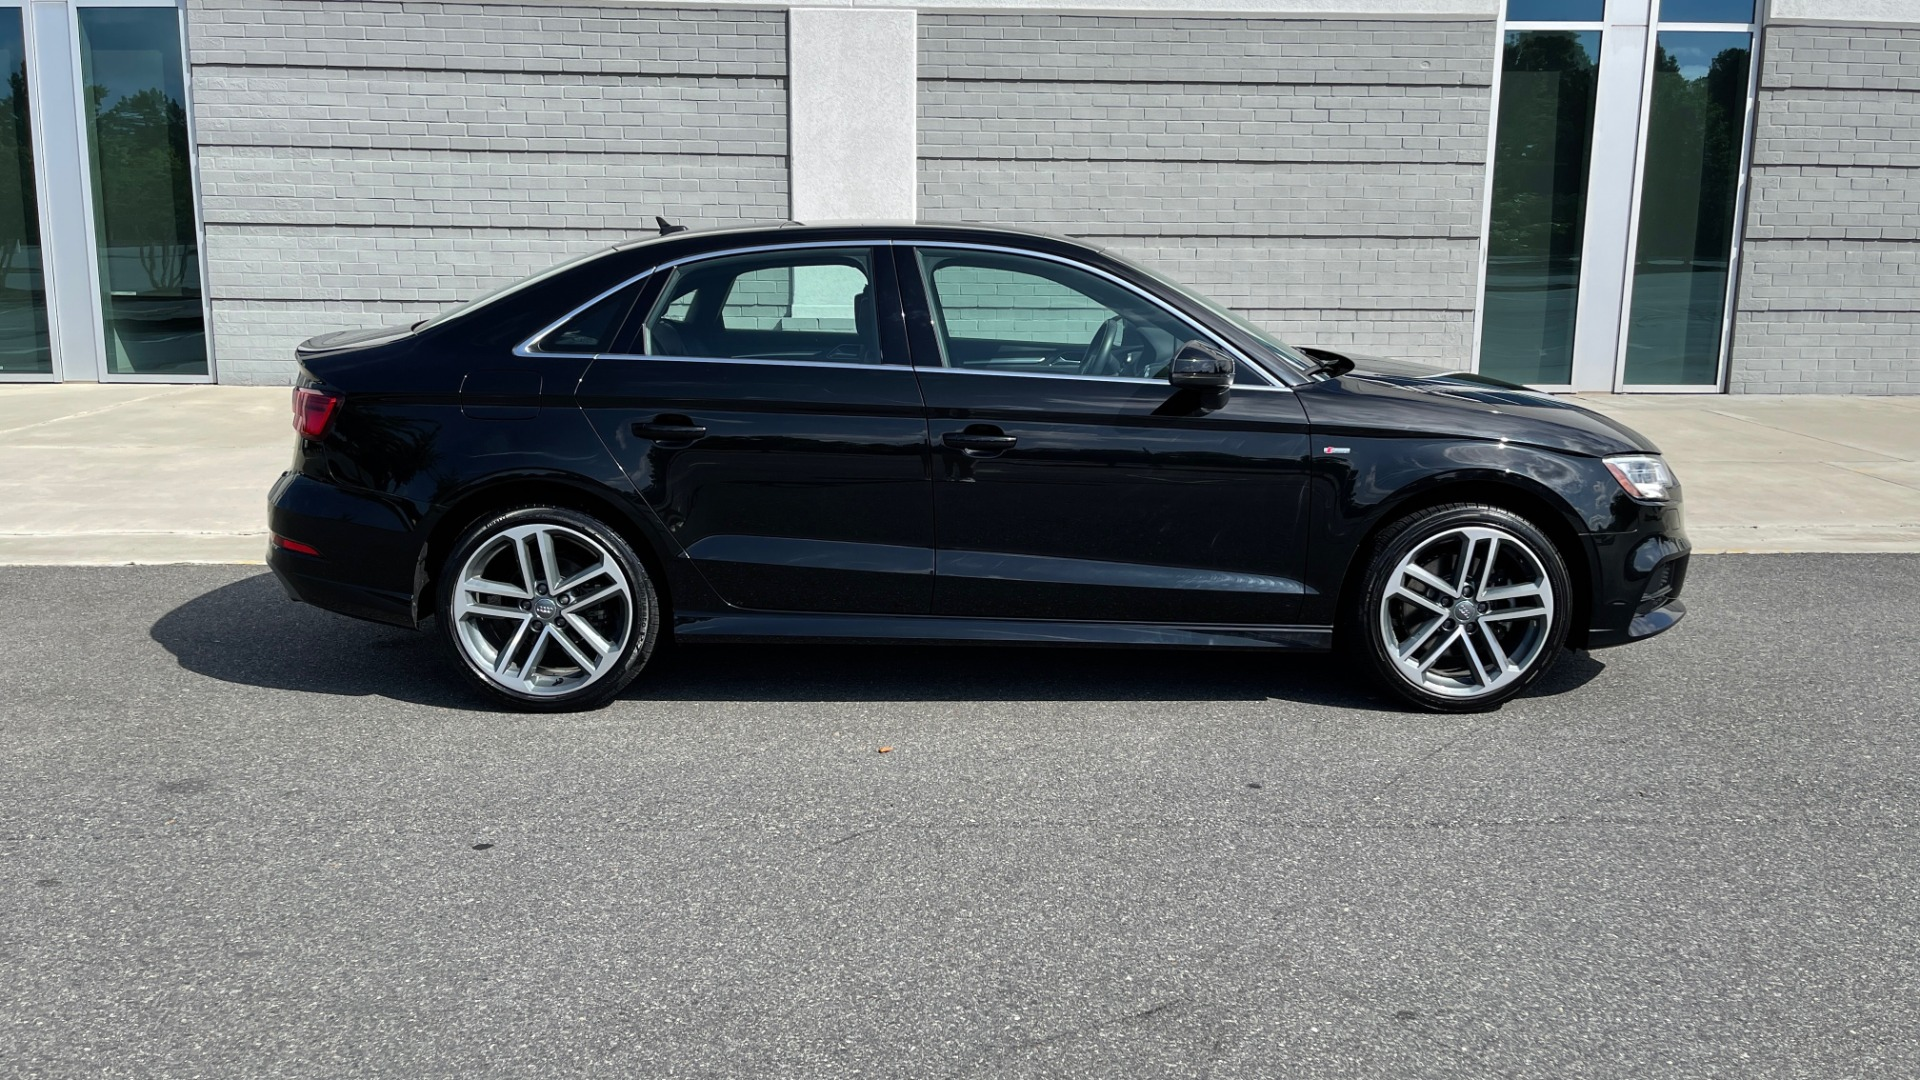 Used 2018 Audi A3 SEDAN PREMIUM PLUS / S-LINE / PANO-ROOF / PARK SYS / REARVIEW for sale $31,795 at Formula Imports in Charlotte NC 28227 7